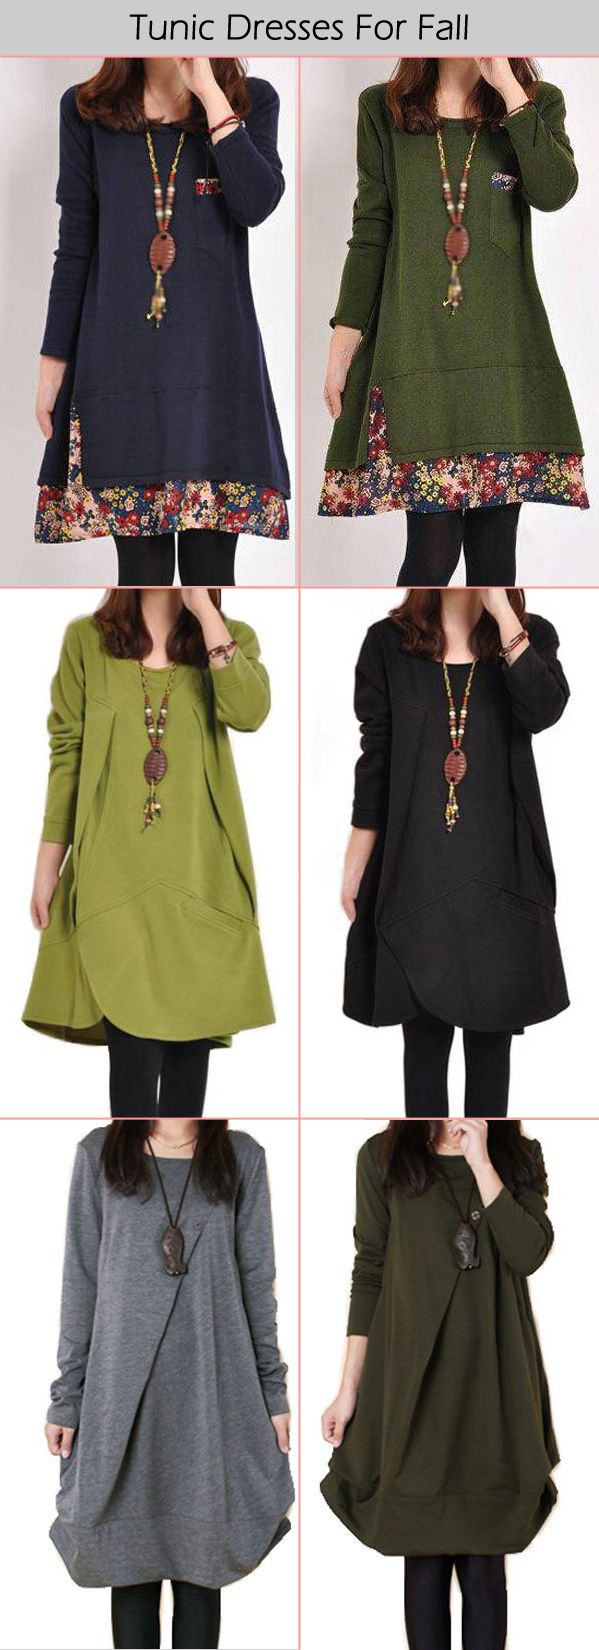 Long Sleeve Tunic Dresses For Fall & Whiter                                                                                                                                                                                 More